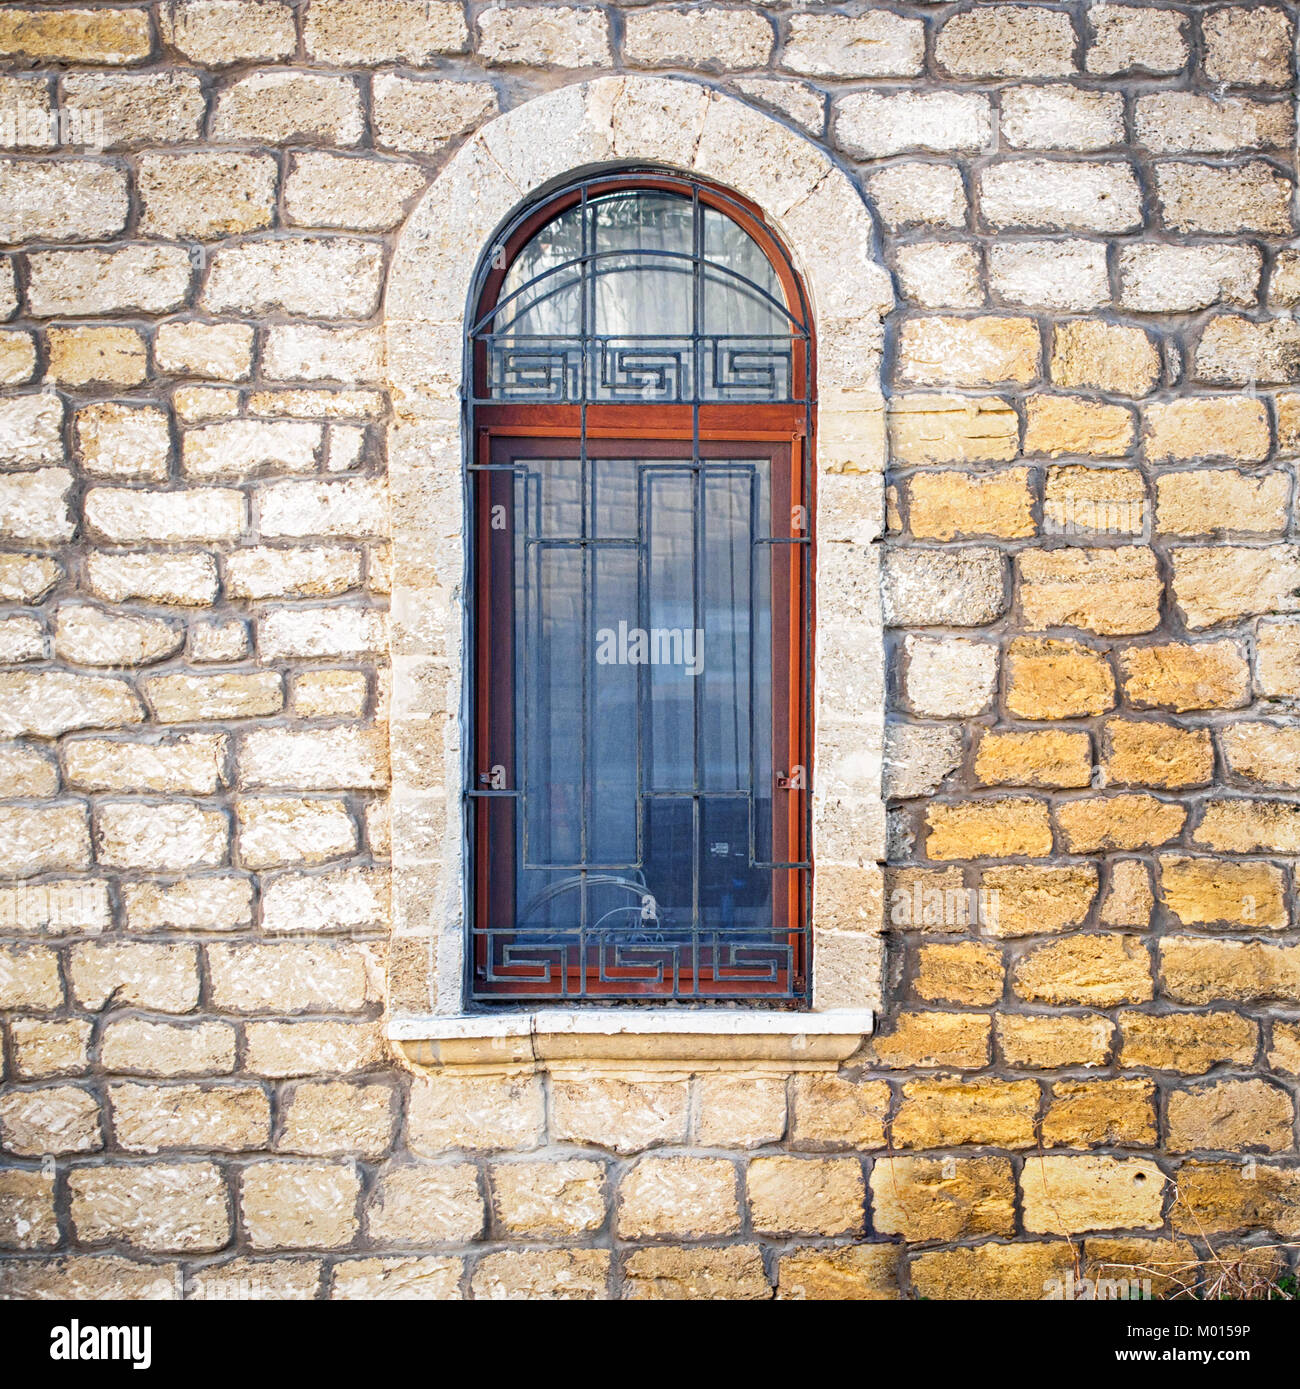 Asian style ancient window in Baku old town - Stock Image